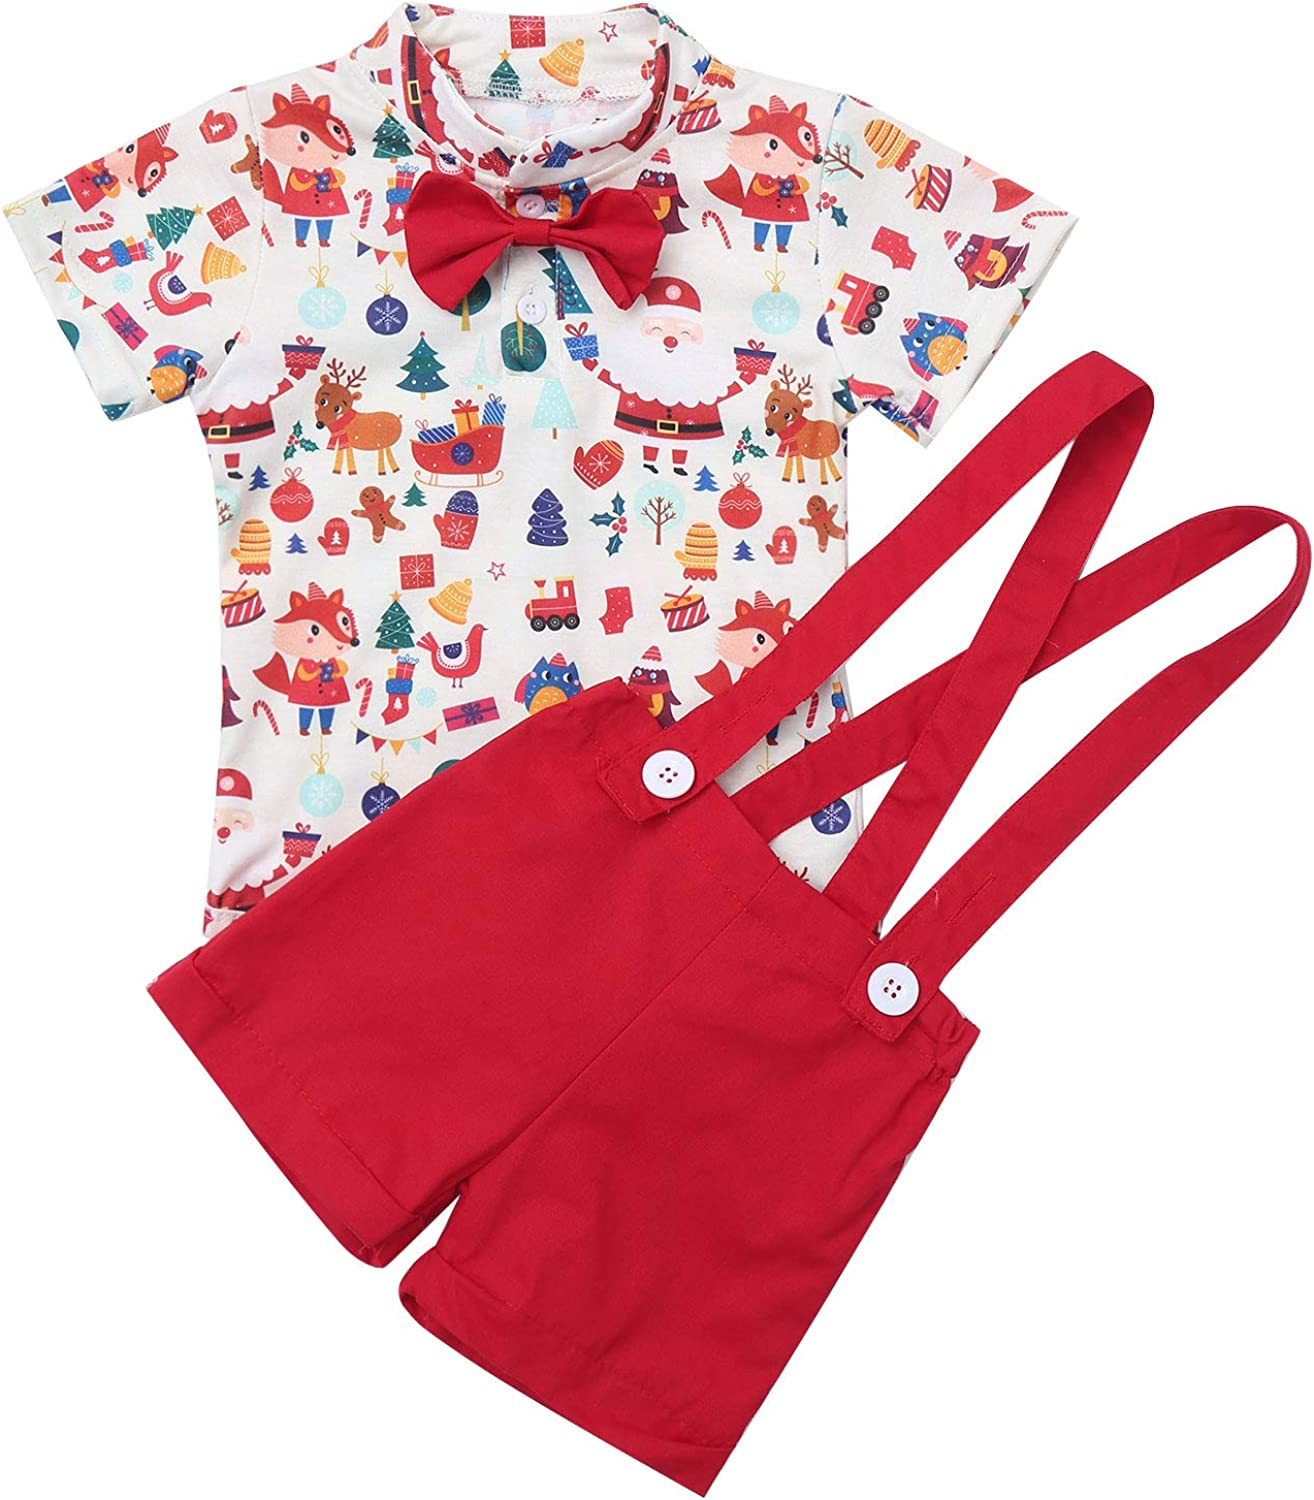 vastwit Toddler Baby Boys Christmas Short Sleeves Shirt Romper with Suspenders Shorts 2Pcs Party Set